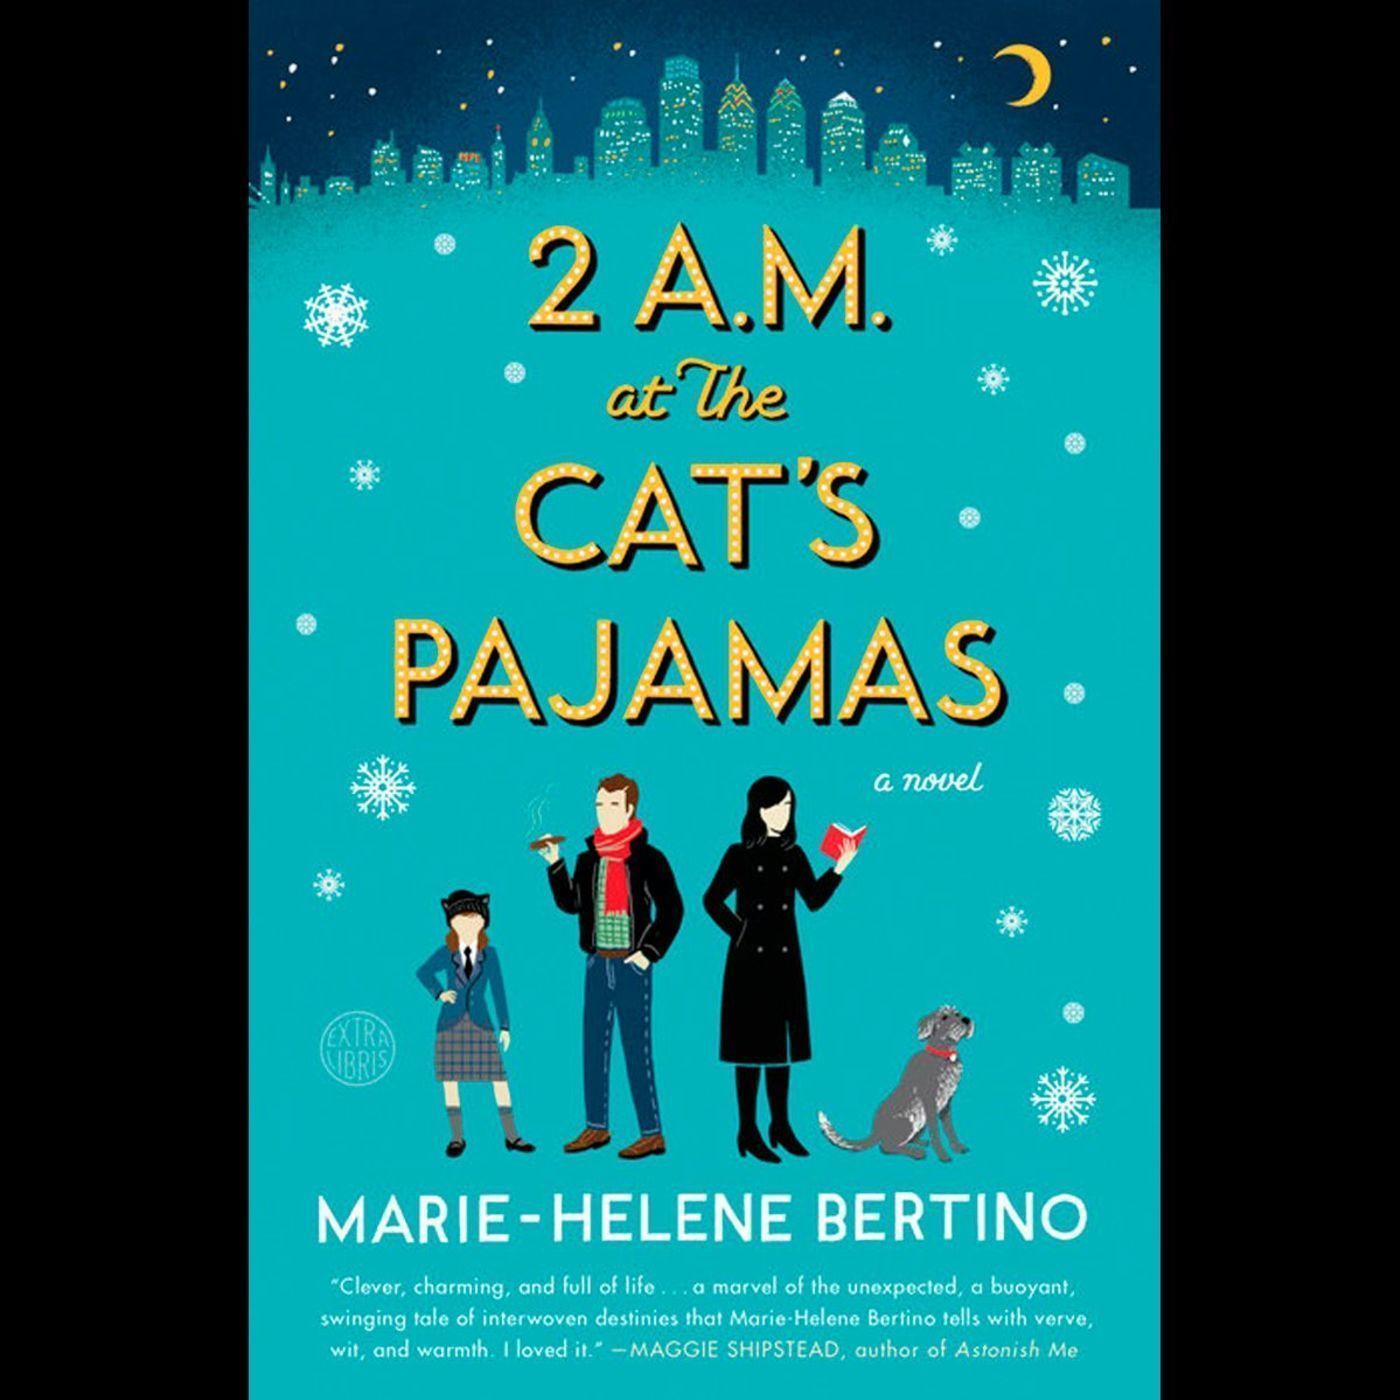 2 A.M at the Cat's Pajamas by Marie-Helene Bertino